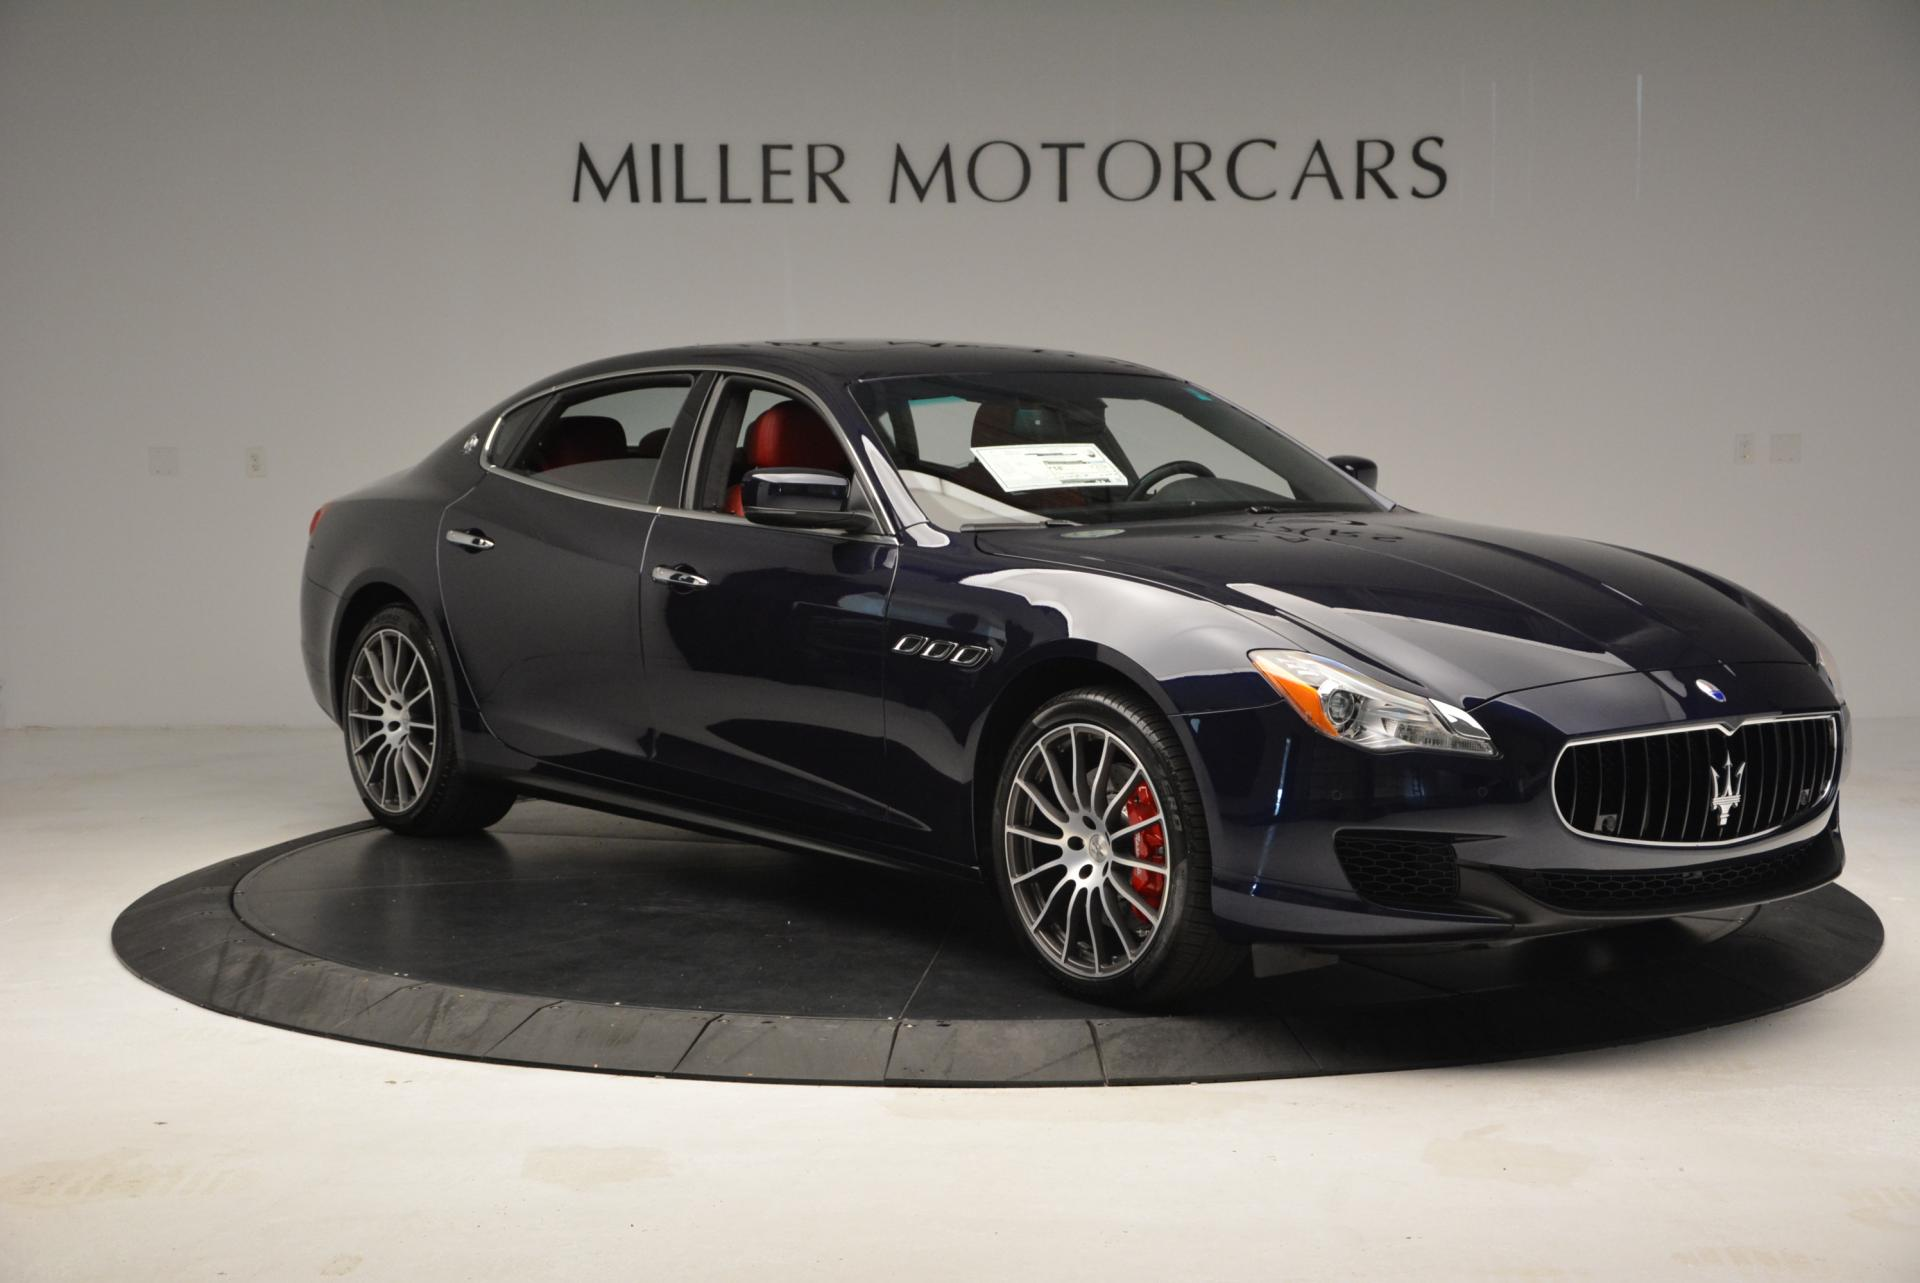 New 2016 Maserati Quattroporte S Q4  *******      DEALER'S  DEMO For Sale In Greenwich, CT 185_p12